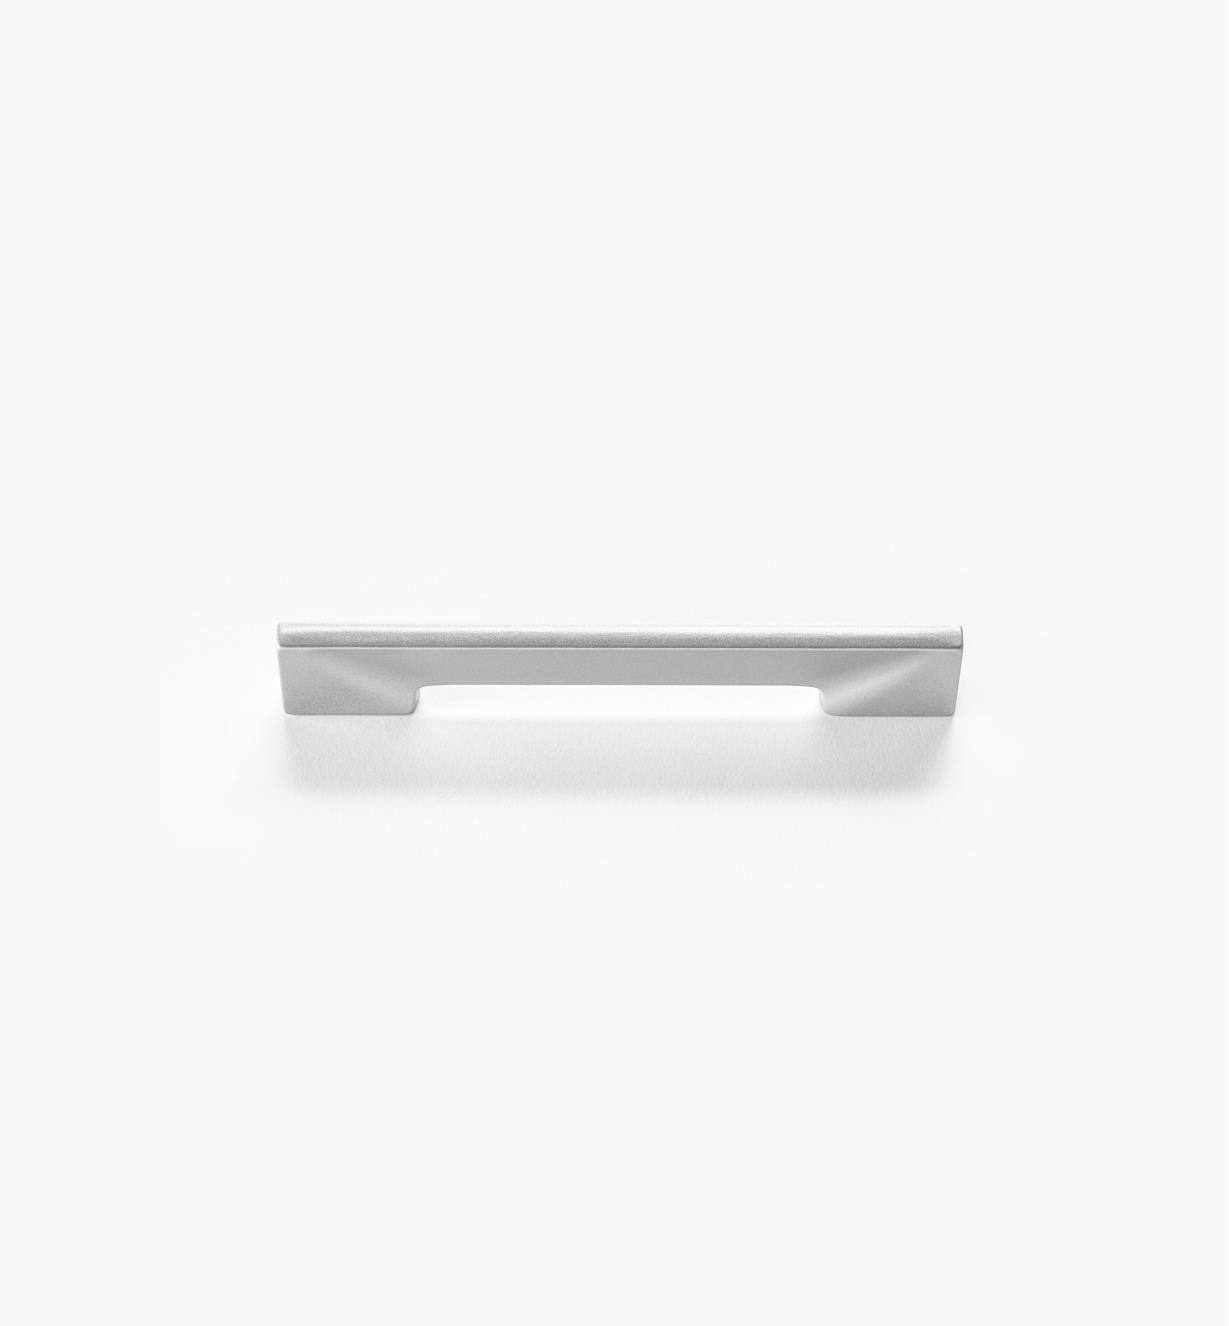 "02A5071 - 5 1/2"" Matte Chrome Handle"